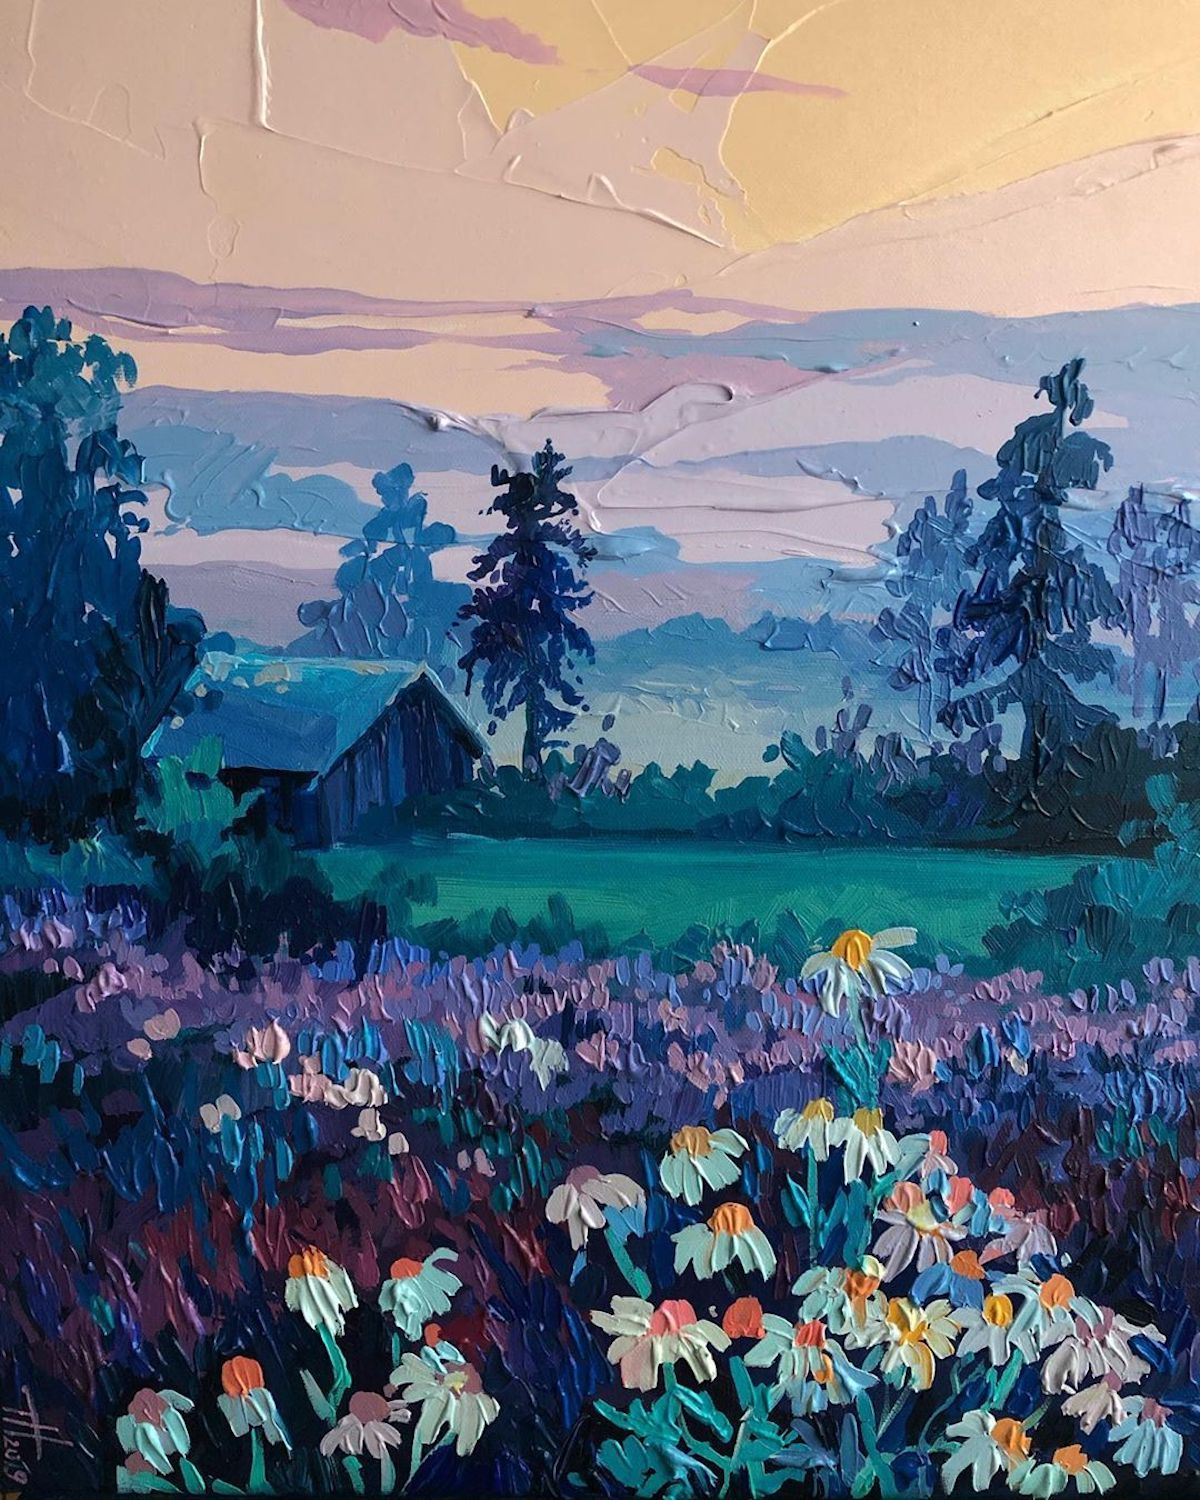 Brilliant Textured Paintings Capture European Countrysides In Kaleidoscopic Colors In 2020 Painting Landscape Paintings Colorful Oil Painting